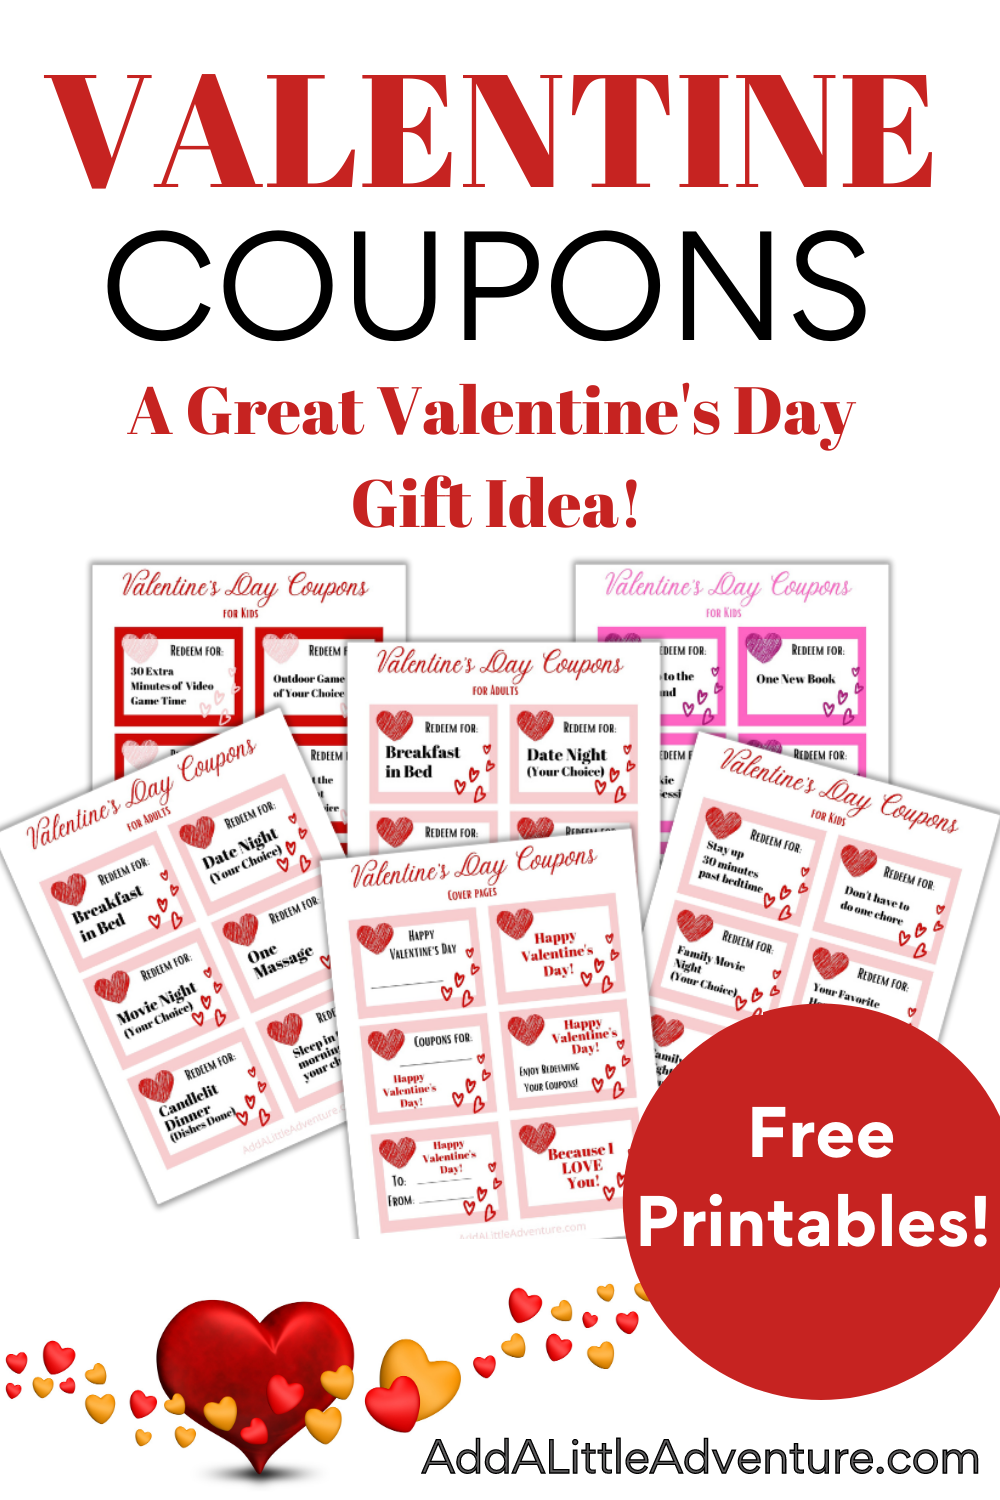 Valentine Coupons A Great Valentine S Day Gift Idea Valentines Printables Free Valentines Coupon Book Free Valentines Gifts